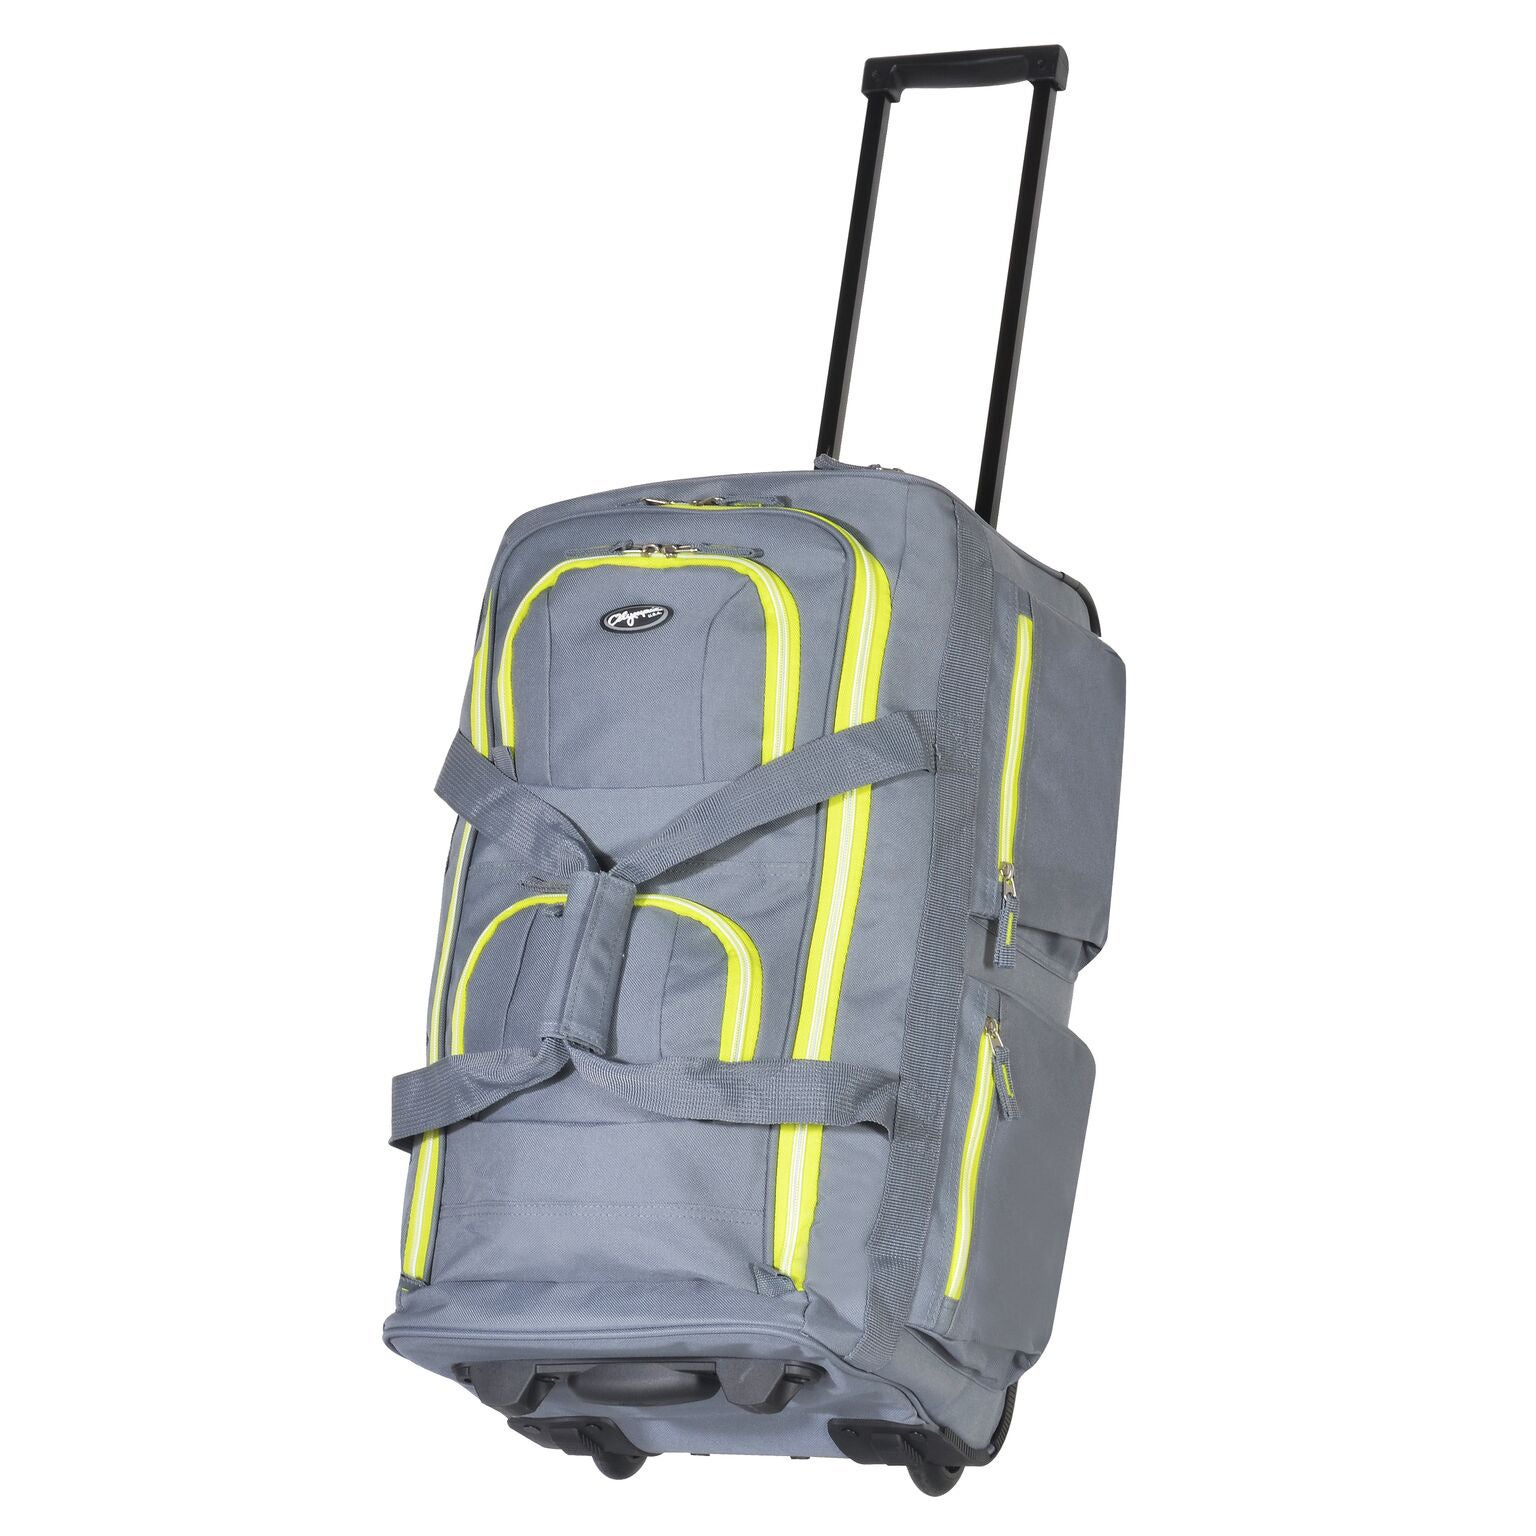 52ffc737bf Shop Olympia SRD 22-inch 8-pocket Carry On Rolling Upright Duffel Bag -  Free Shipping Today - Overstock - 3147701